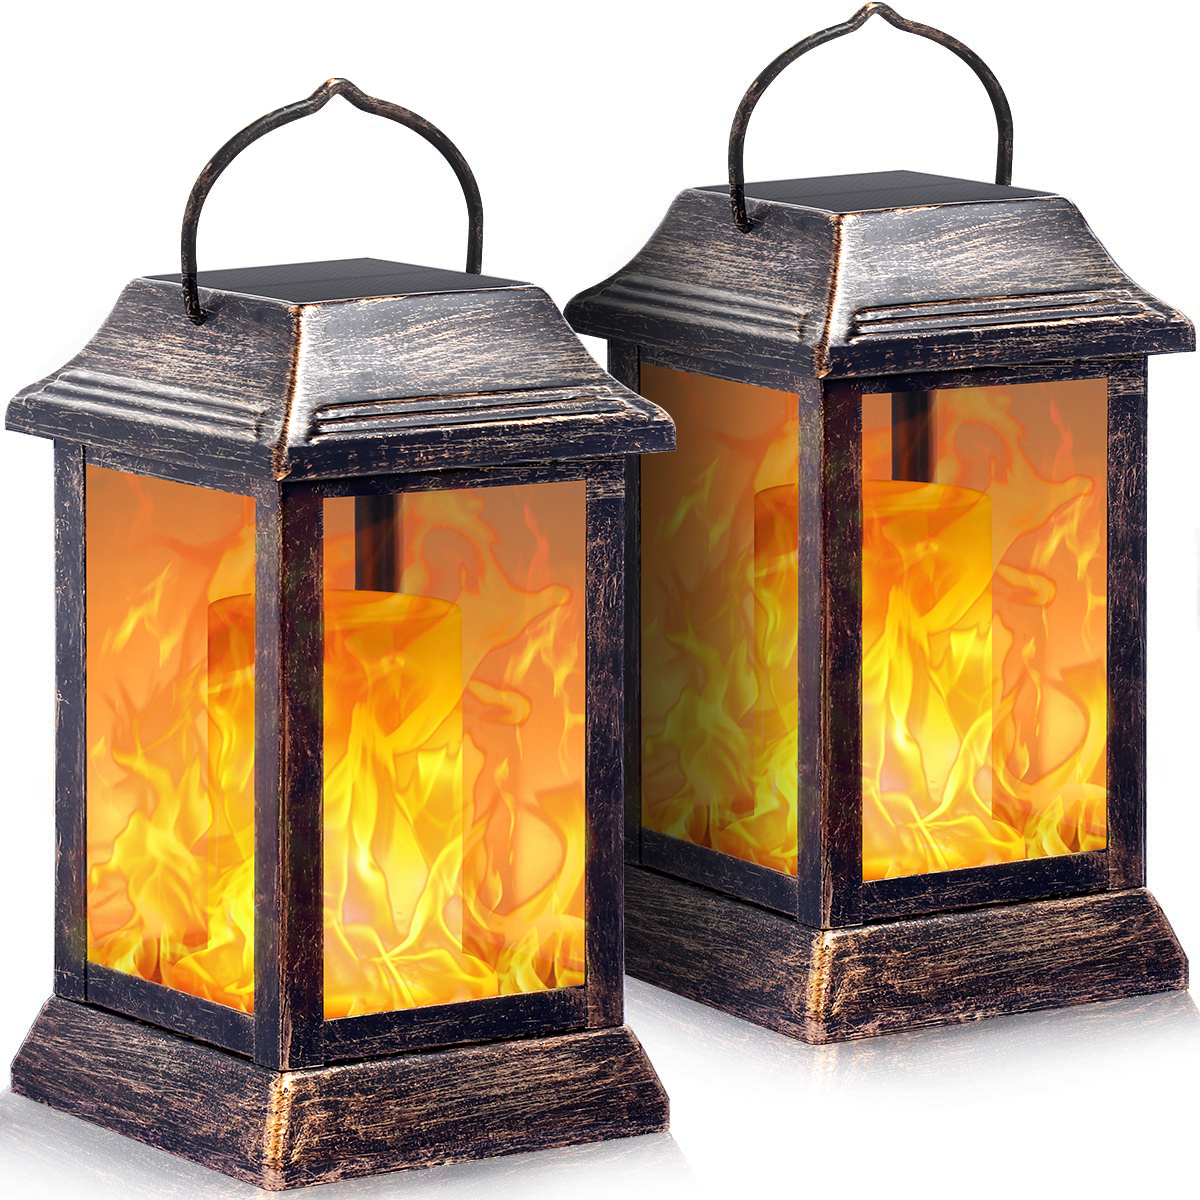 TomCare Solar lights Metal Flickering Flame Solar Lantern Outdoor Hanging Lanterns Lighting Heavy Duty Solar Powered Waterproof Umbrella LED Flame Lights for Garden Patio Pathway Deck Yard, 2 Pack